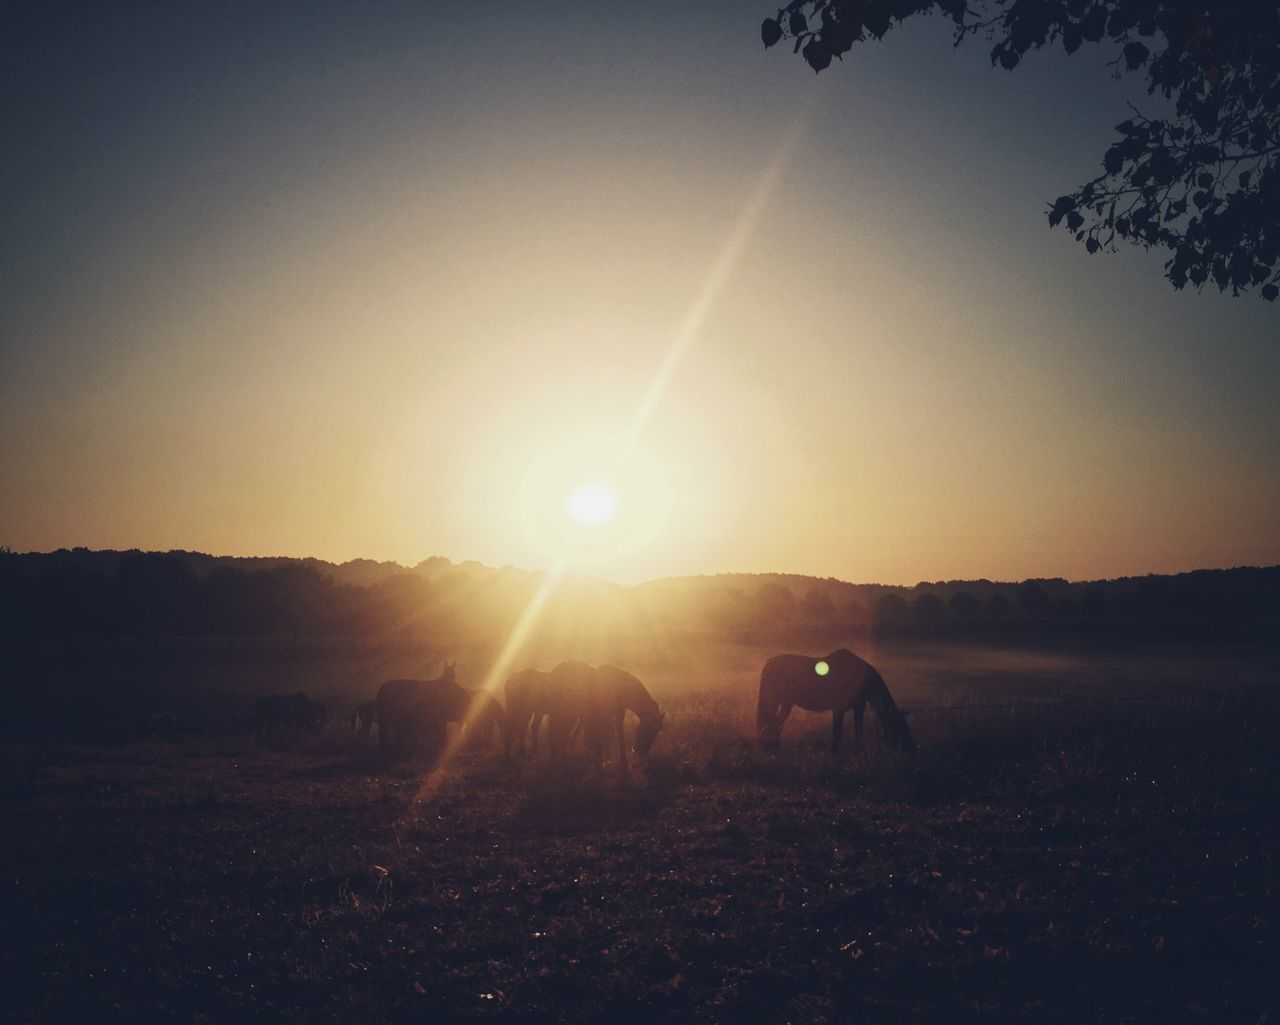 sun, sunset, sunbeam, sunlight, lens flare, nature, silhouette, domestic animals, beauty in nature, field, landscape, real people, togetherness, outdoors, mammal, sky, men, clear sky, scenics, friendship, day, people